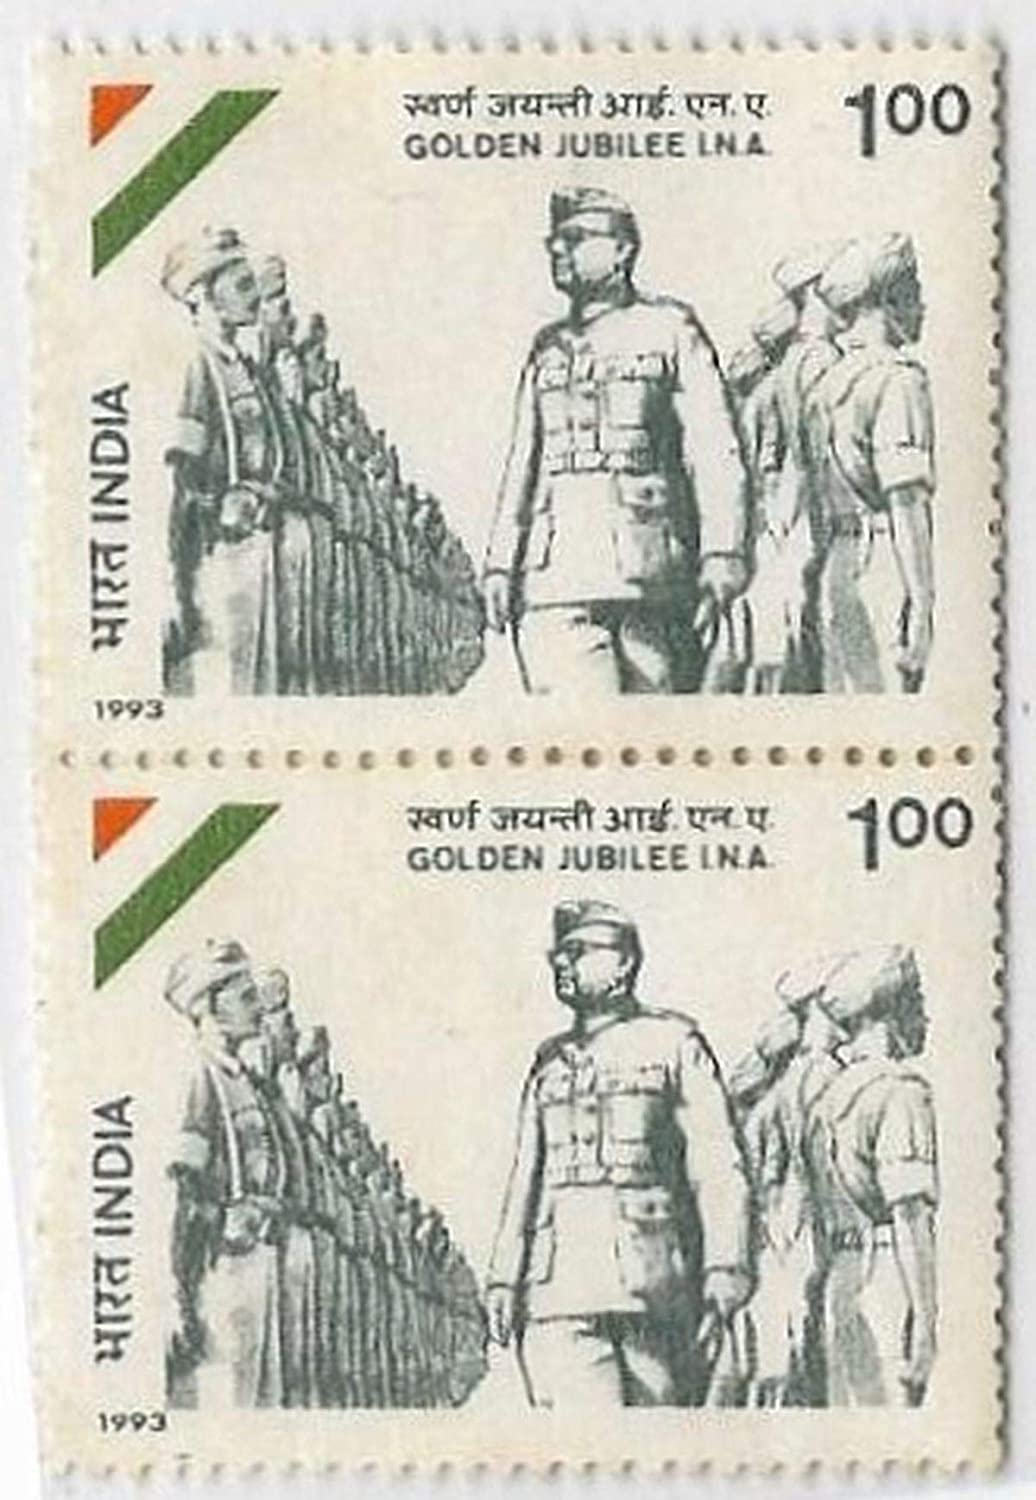 Rare India 1993 Golden Jubilee I N A Indian National Army